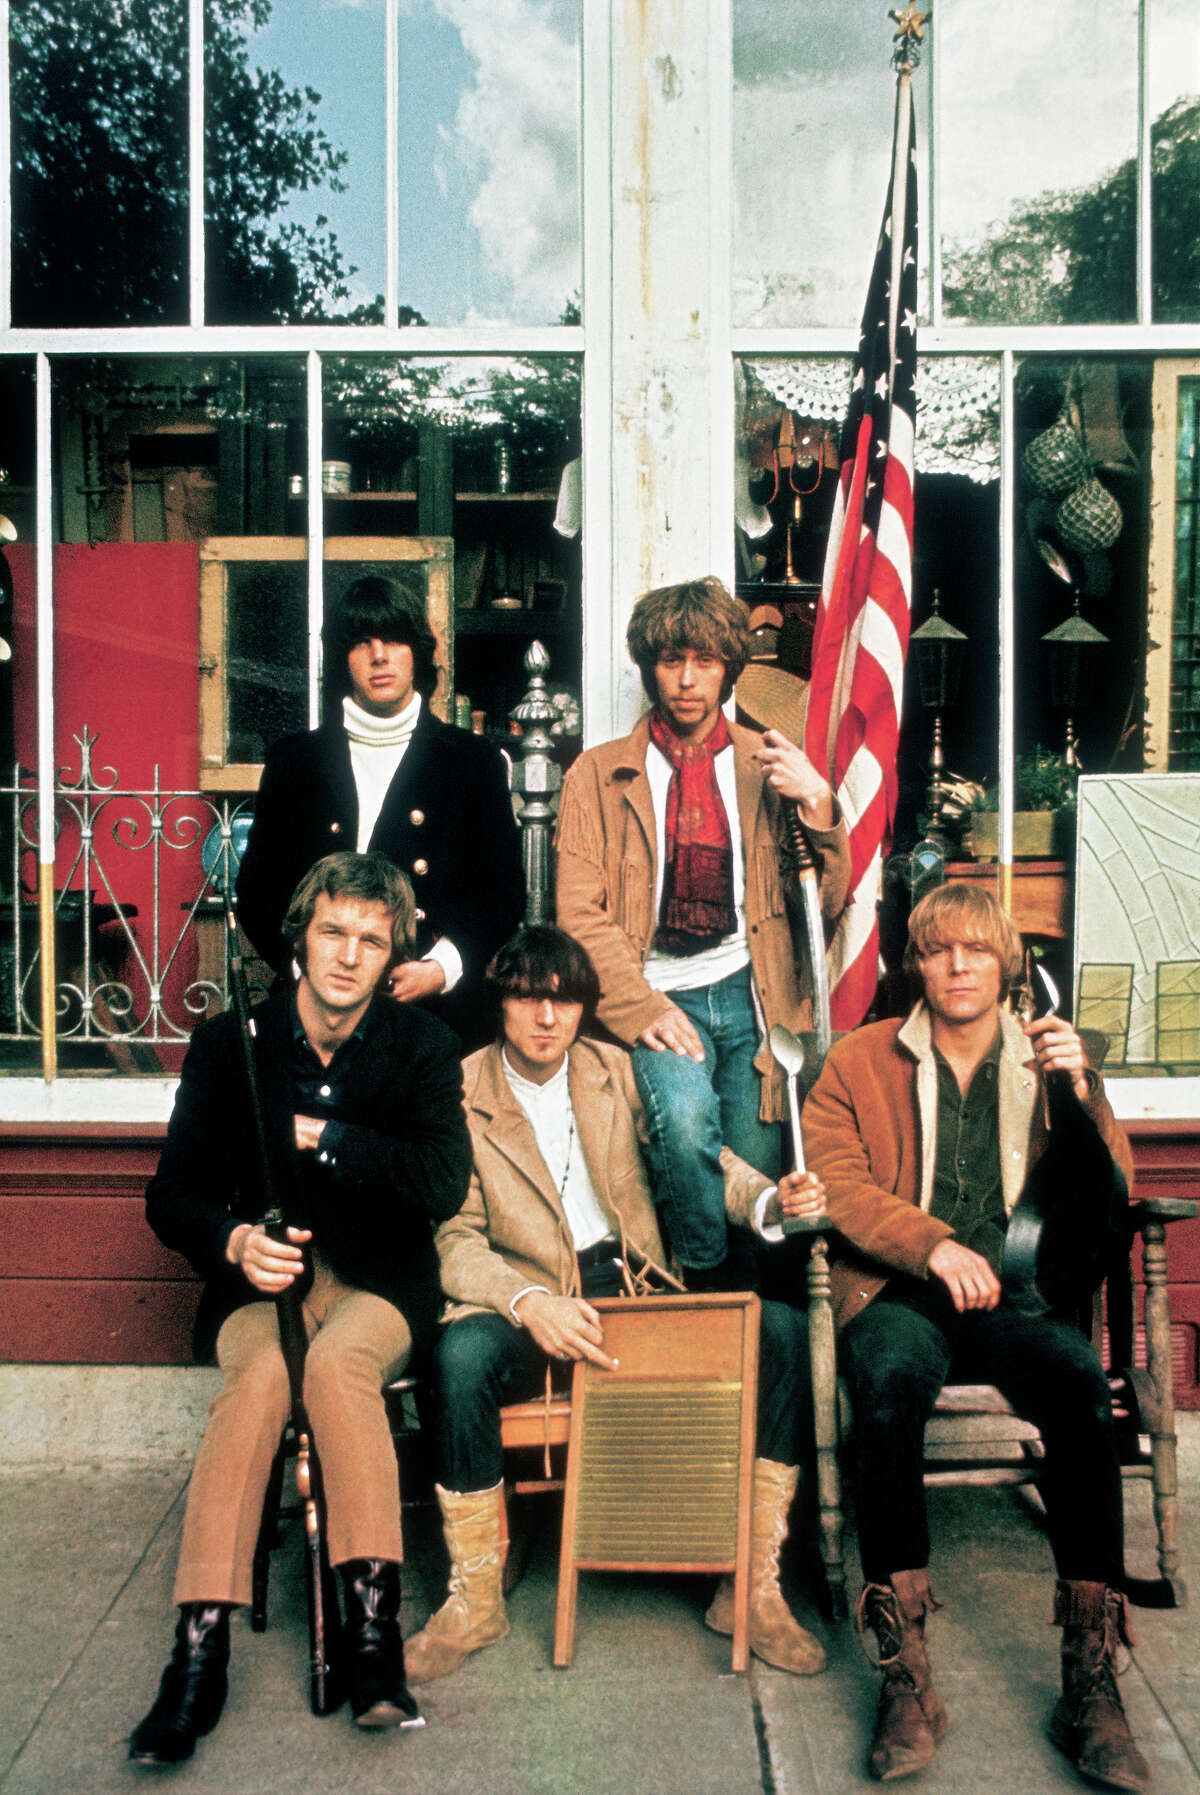 Cover shot for Moby Grape's debut album for Columbia Records shot in San Rafael, CA, 1967